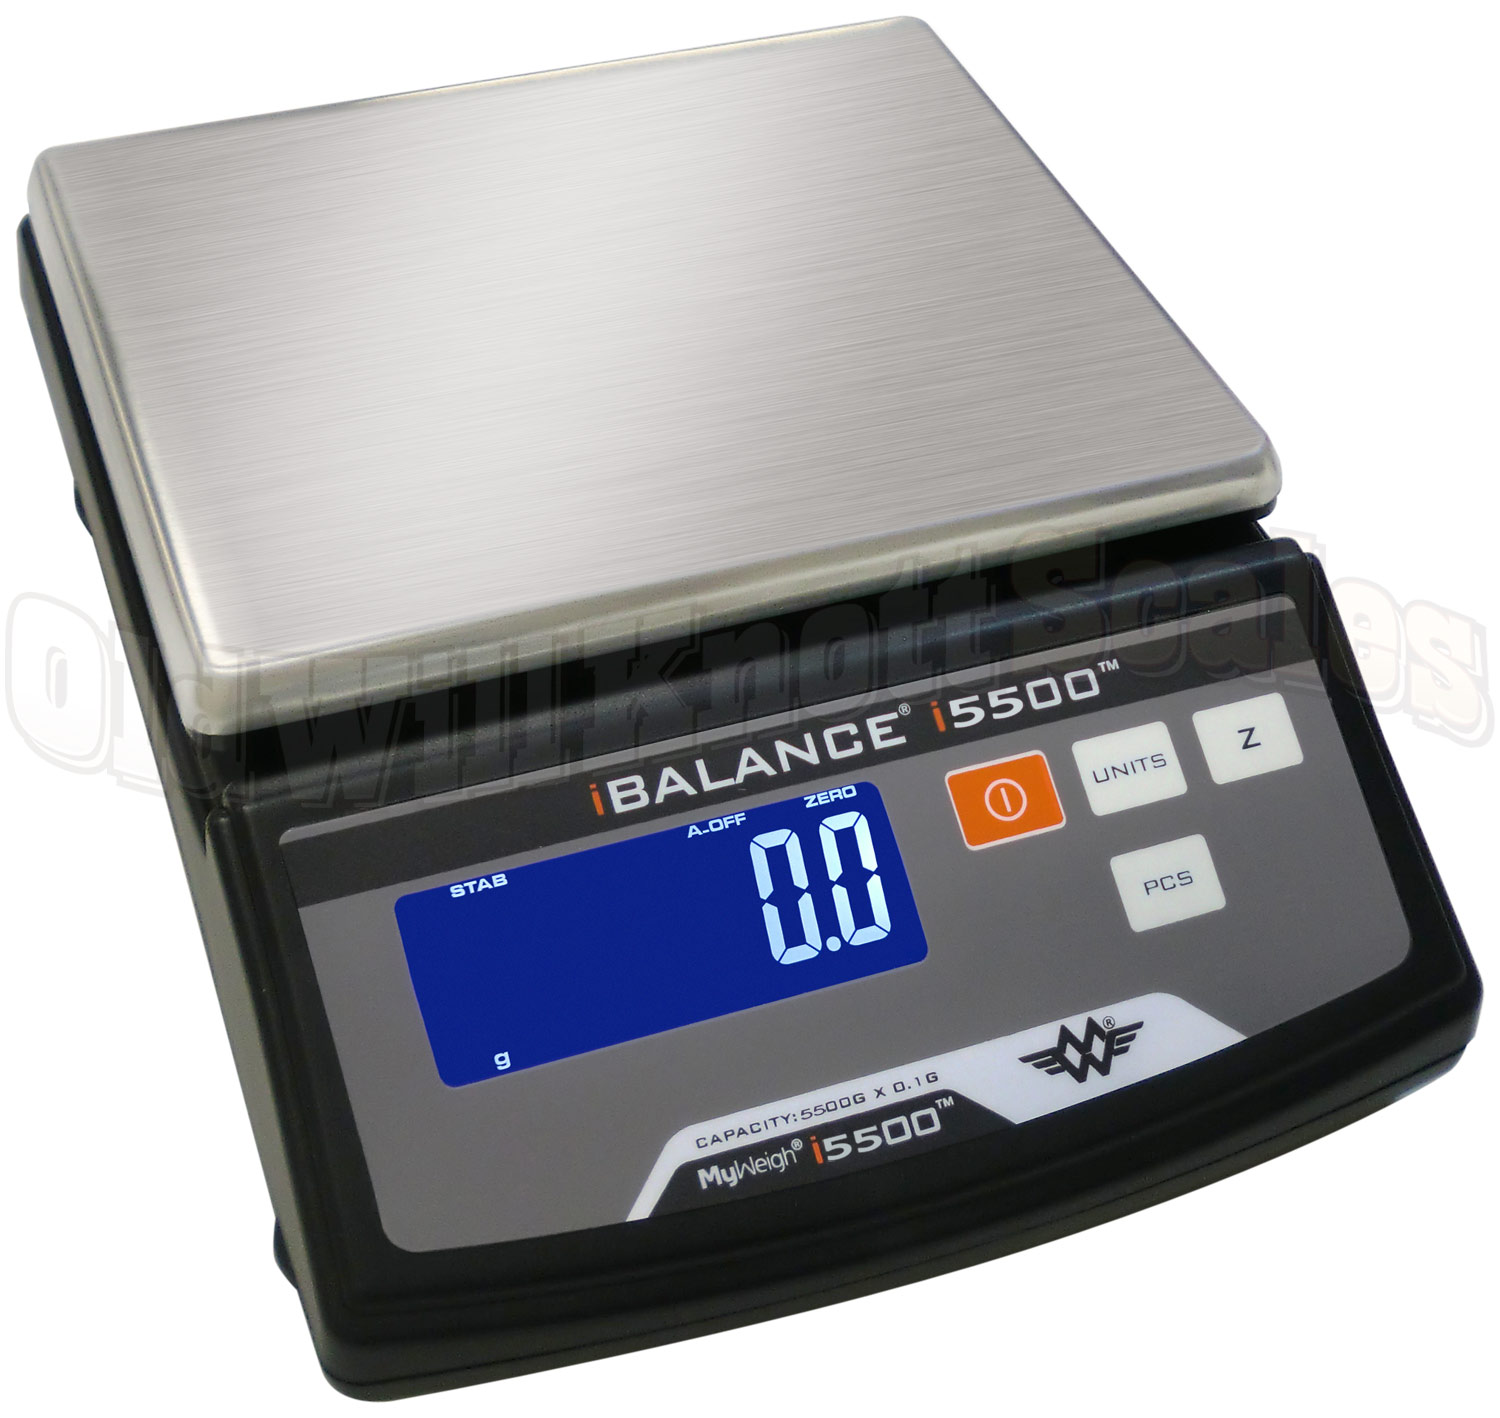 My Weigh Ibalance I5500 Precision Balance